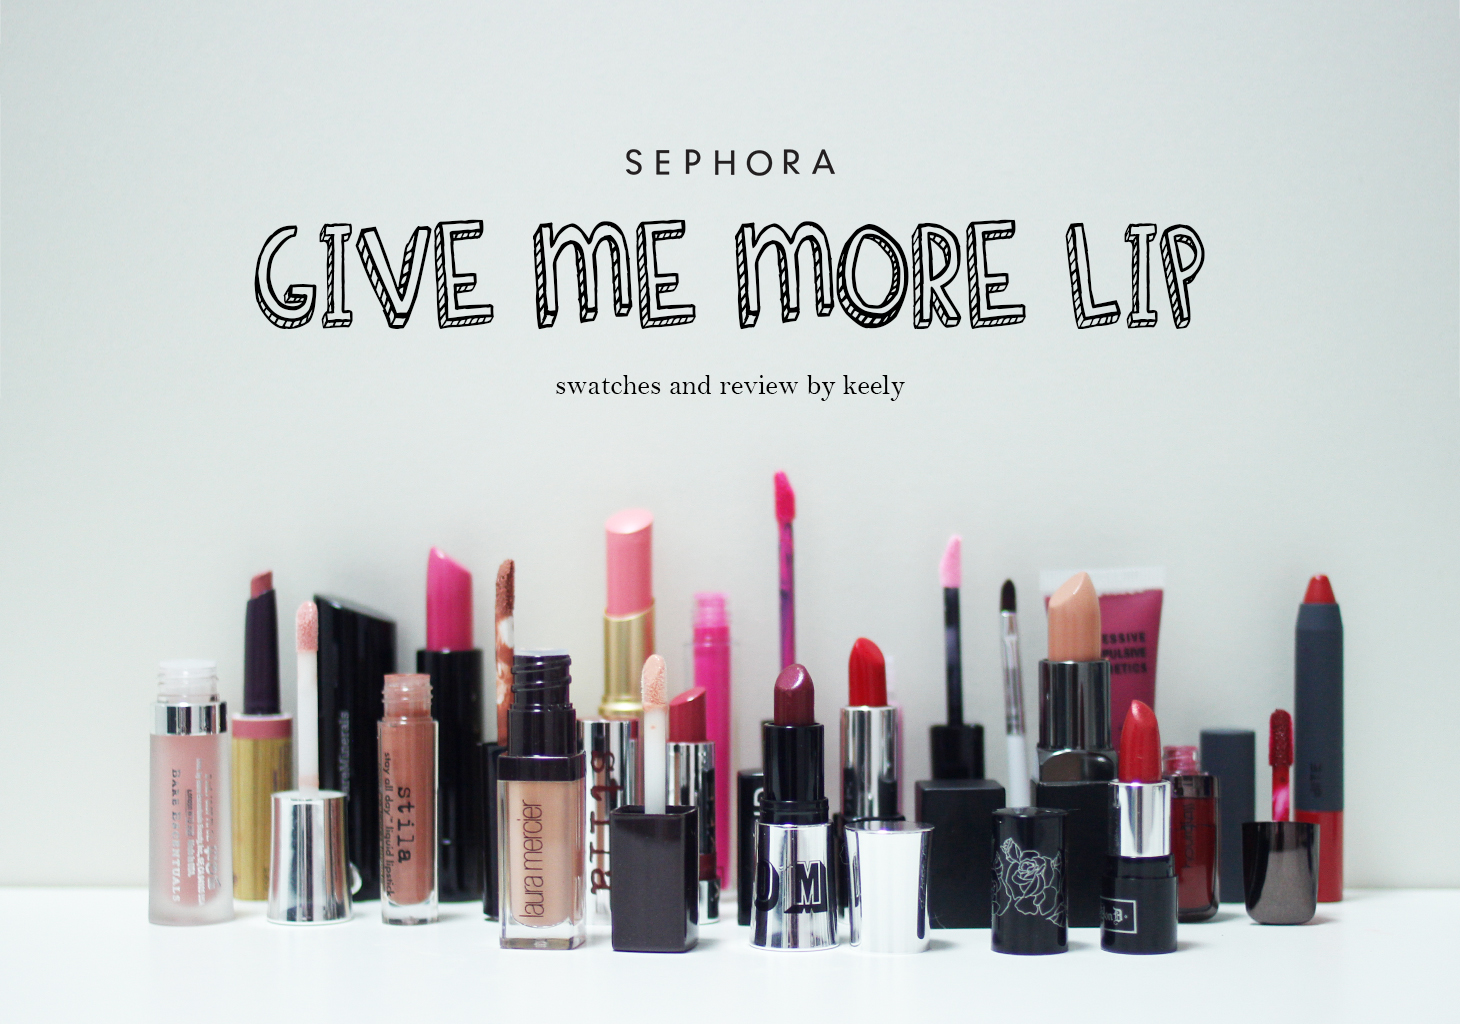 Give Me More Lip campagna Sephora USA